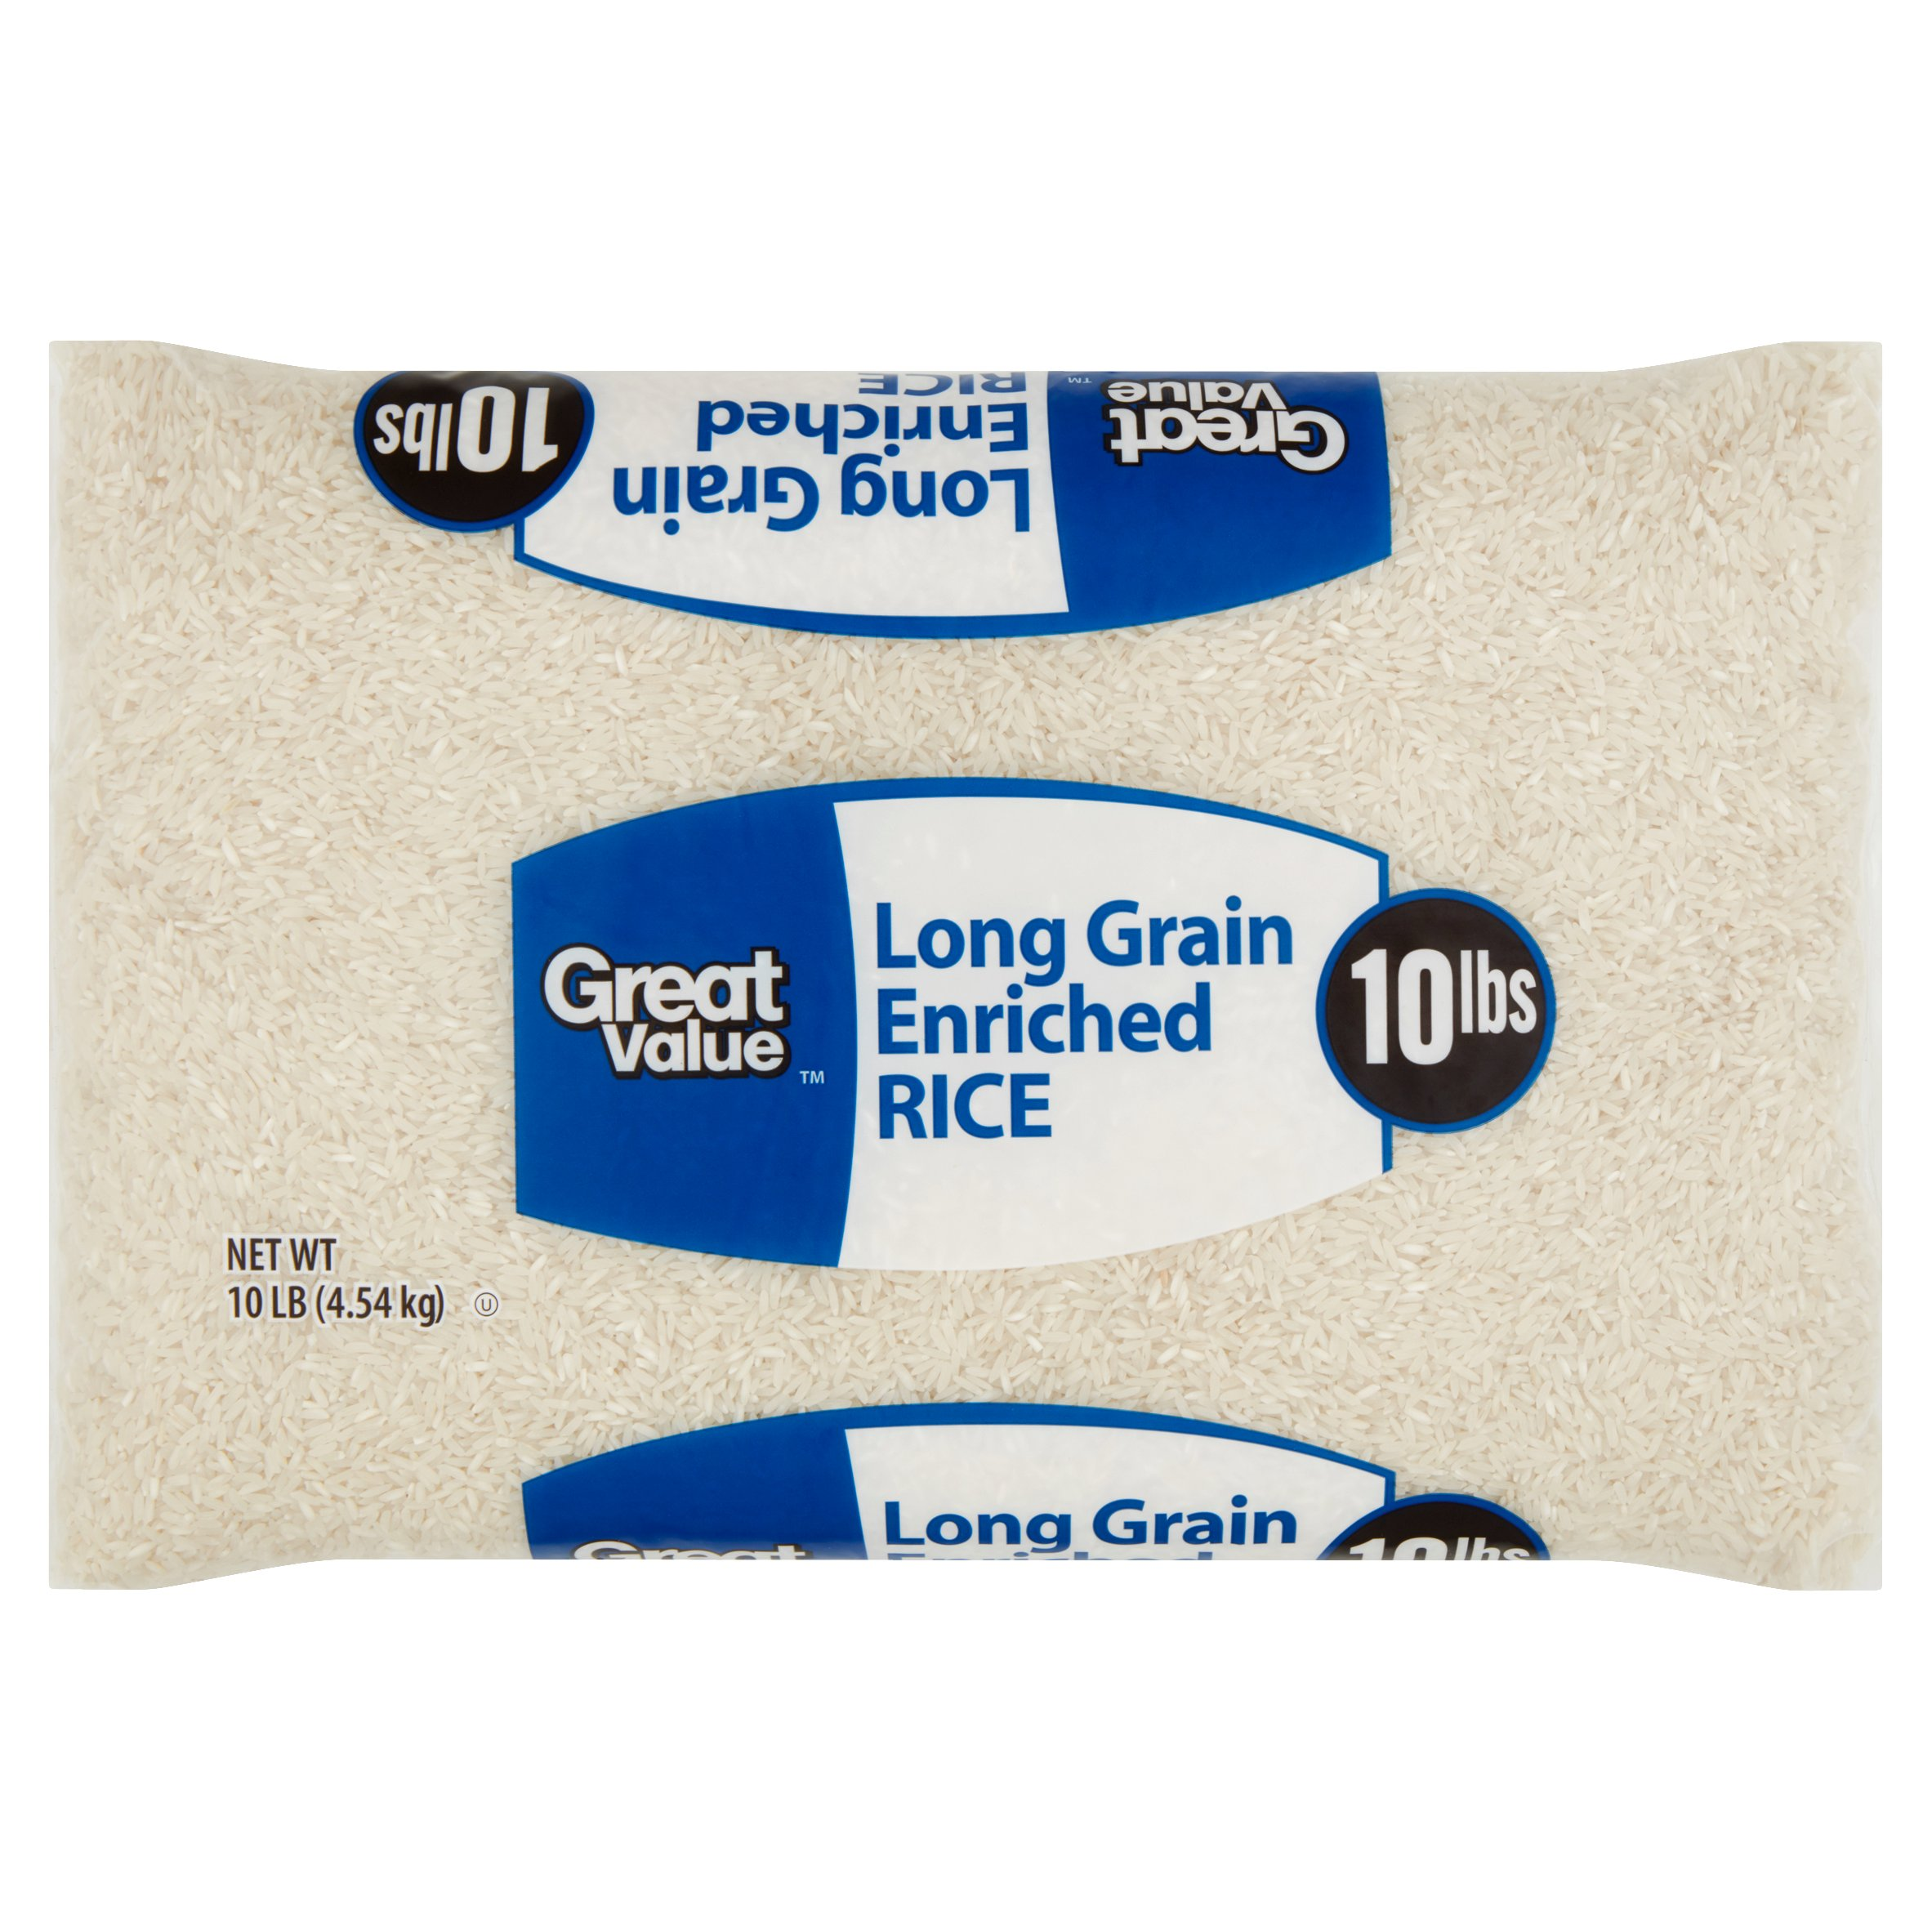 Great Value Long Grain Enriched Rice, 10 lb